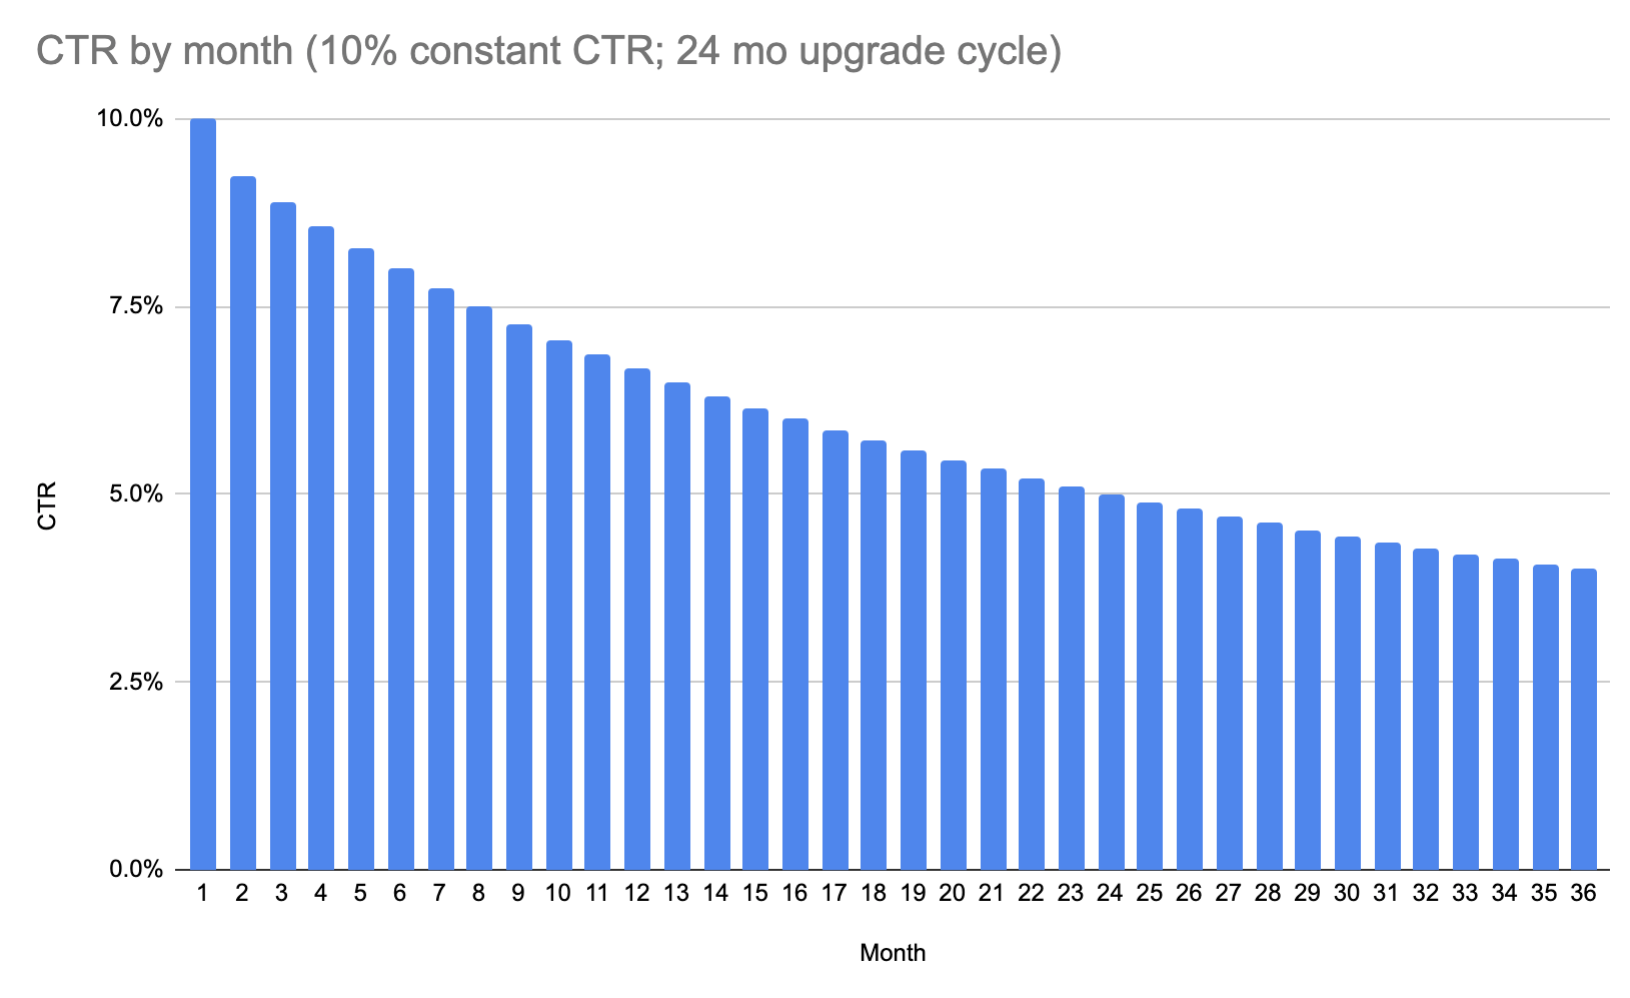 """This model assumes users upgrade their phones every 24 months and a 10% """"true"""" CTR (CTR only of ACTIVE devices). You can see that on the 24th month, the click through rate was half of the initial percentage since there are twice as many subscribed devices."""